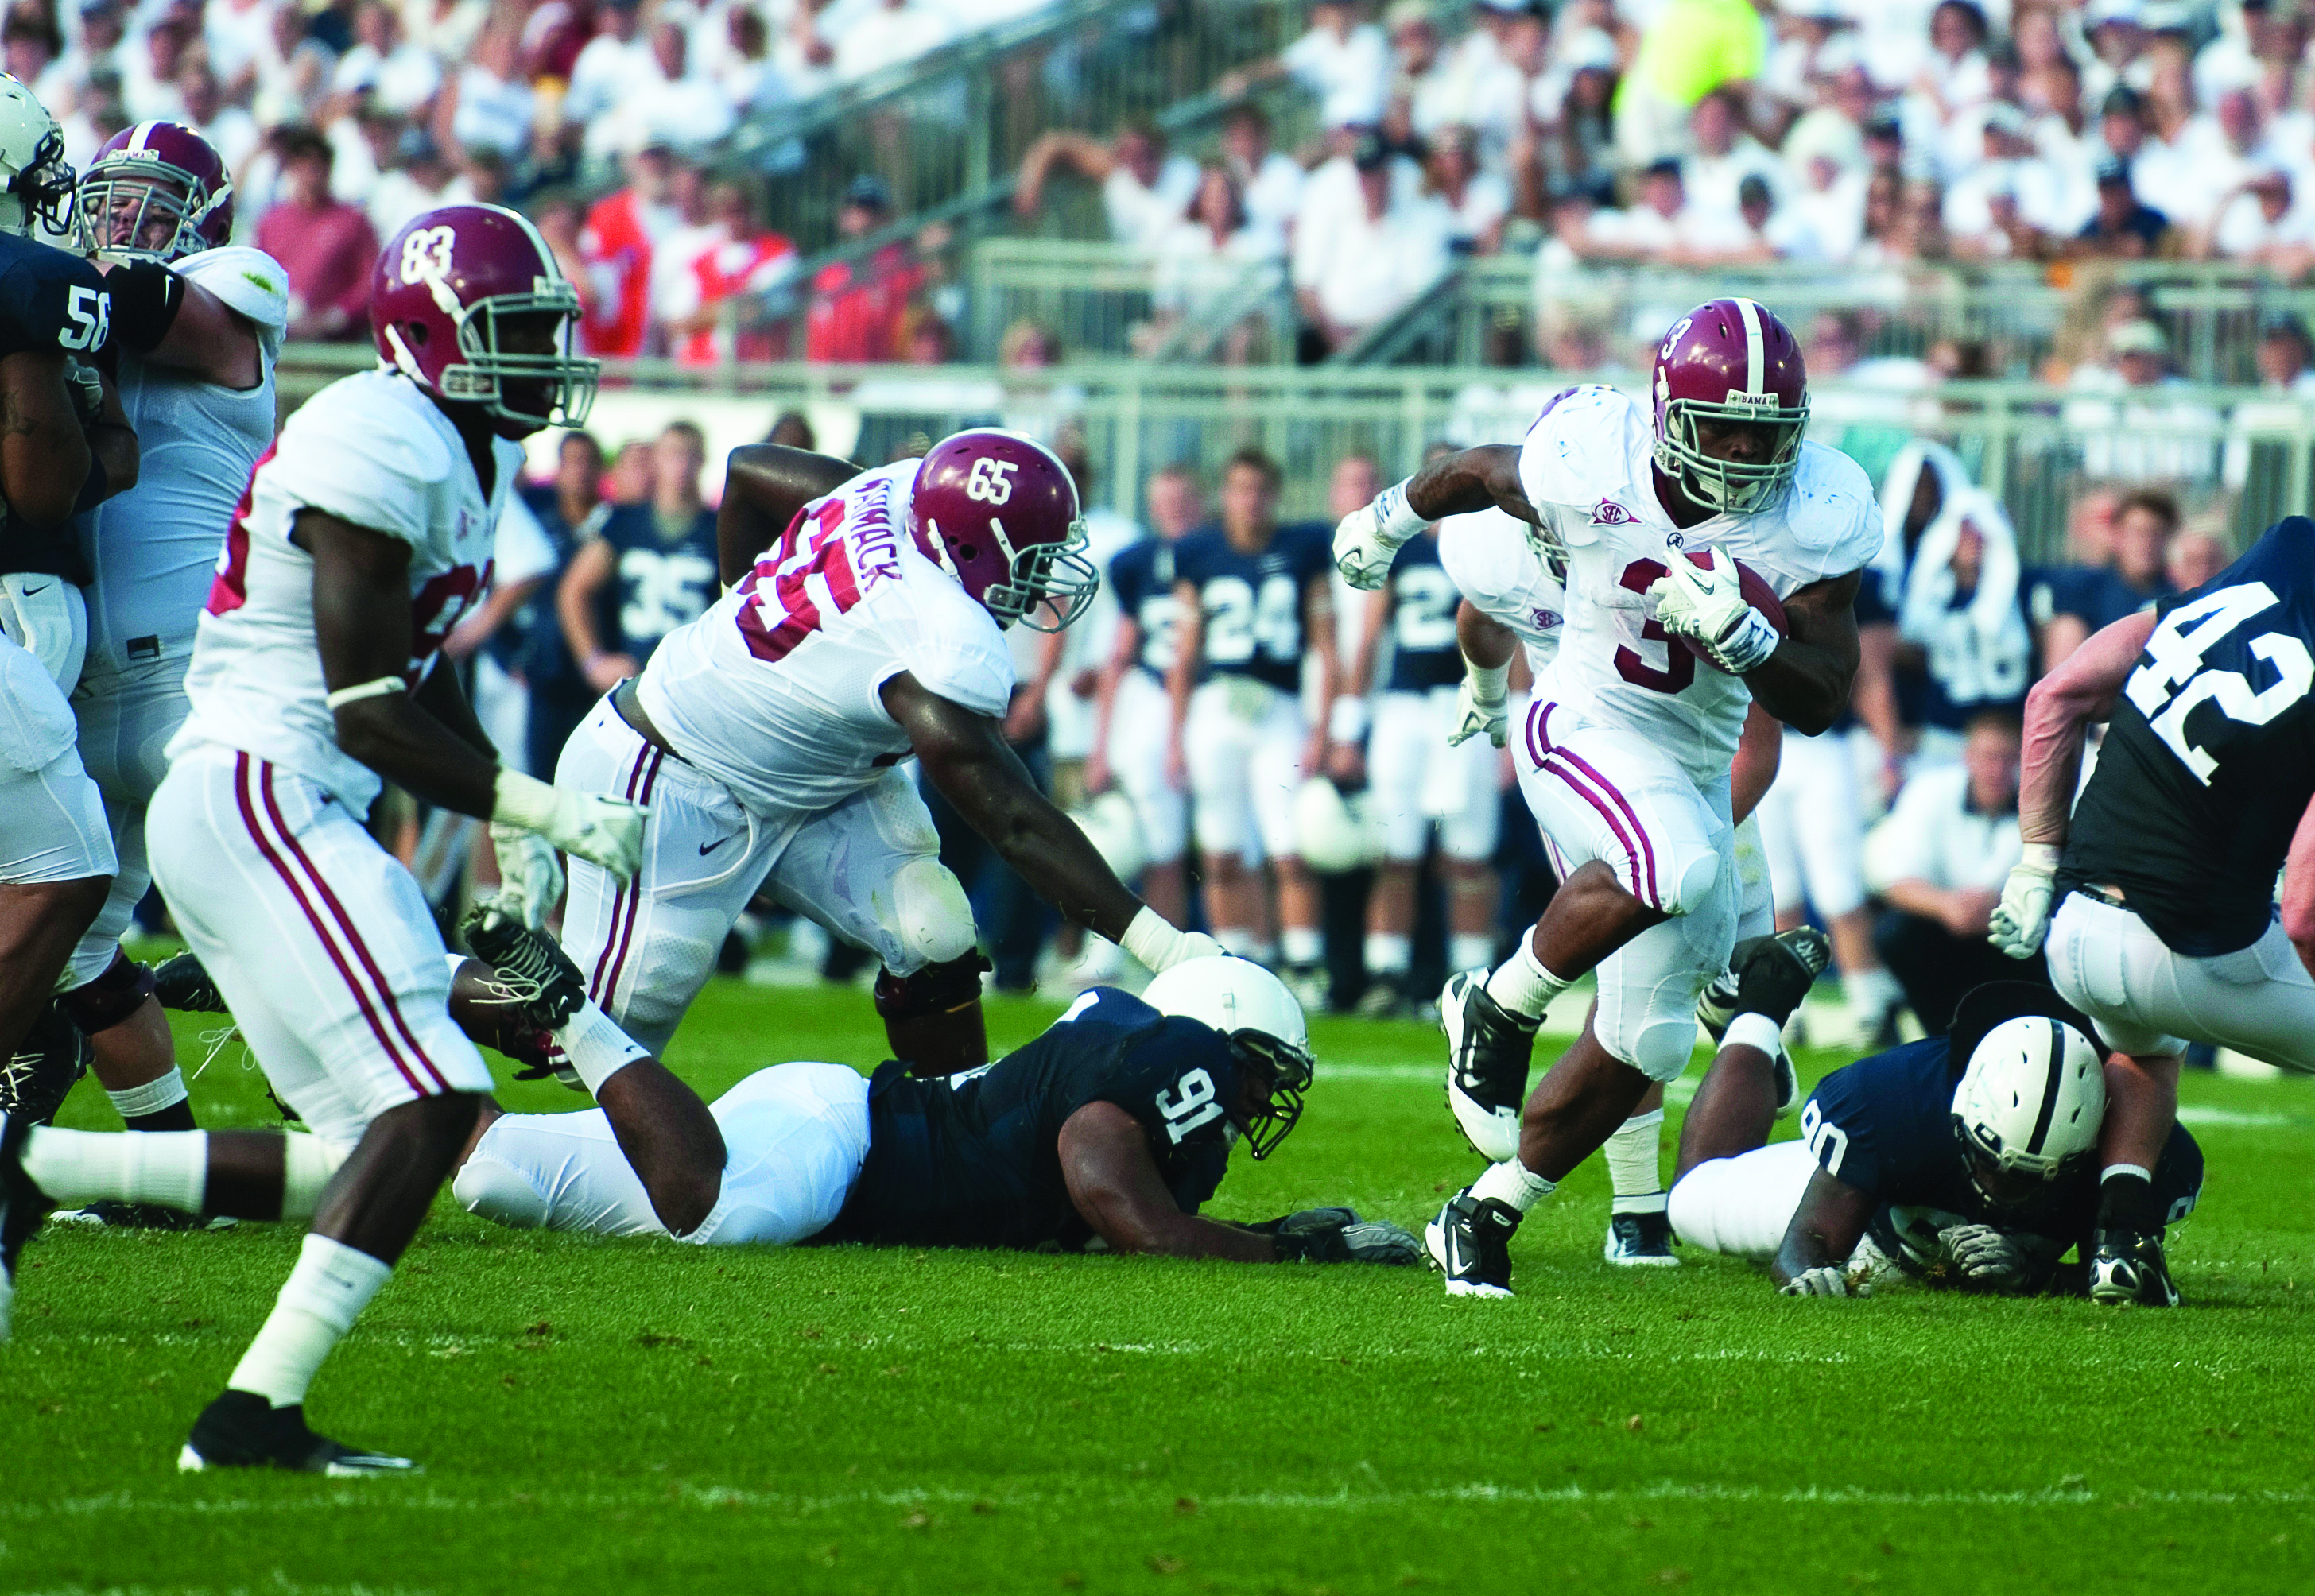 Ground and Pound: Analyzing the Tide running backs